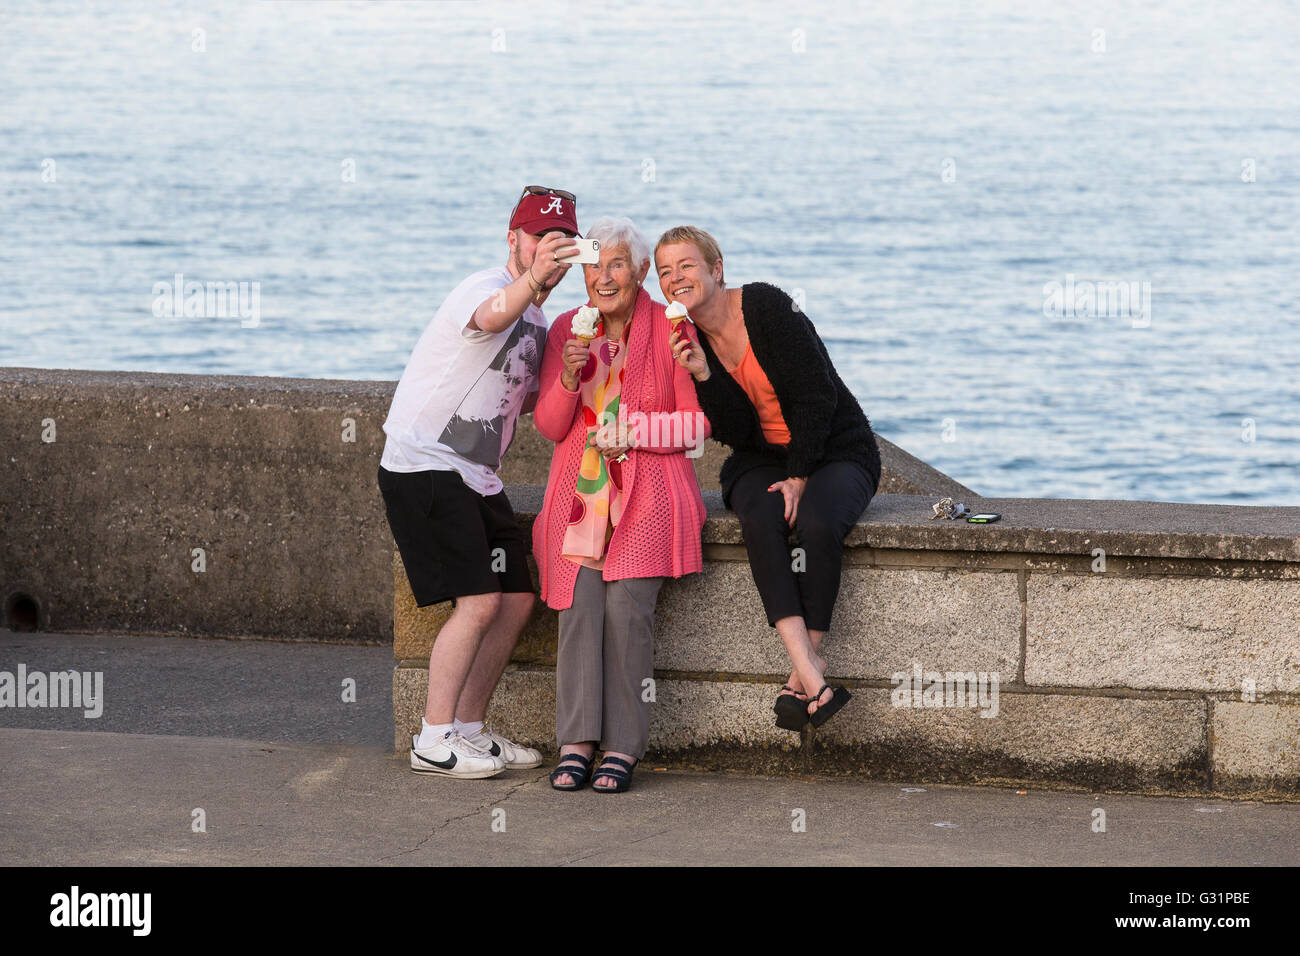 3 three people group selfie photo man men woman uk - Stock Image